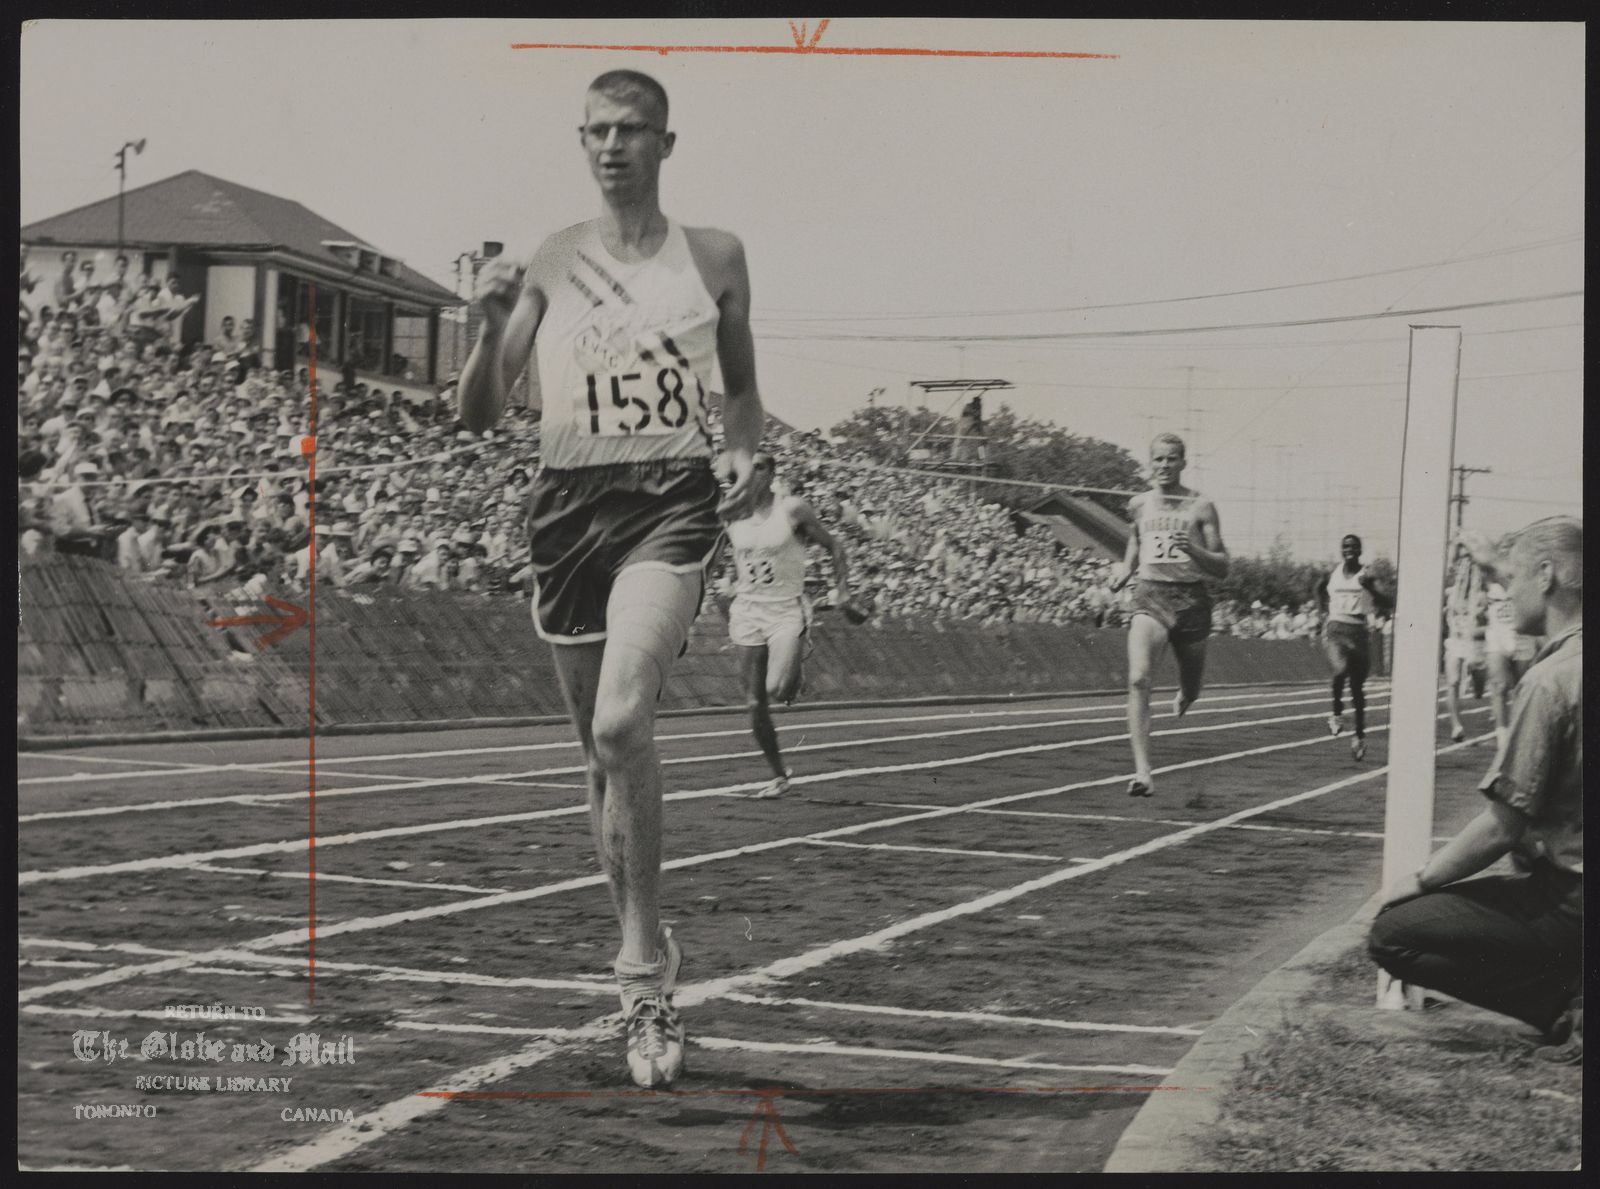 Bill CROTHERS Sprinter Bill Crothers of East York hits finish line in record time for 800-yard run. Crothers clocked 1:49.0, 0.6 seconds better than record held by Ergas Leps of Toronto. Leps was sixth yesterday. Trailing Crothers are Siq Ohleman (32) and Don Bertaio (33) both from Vancouver.